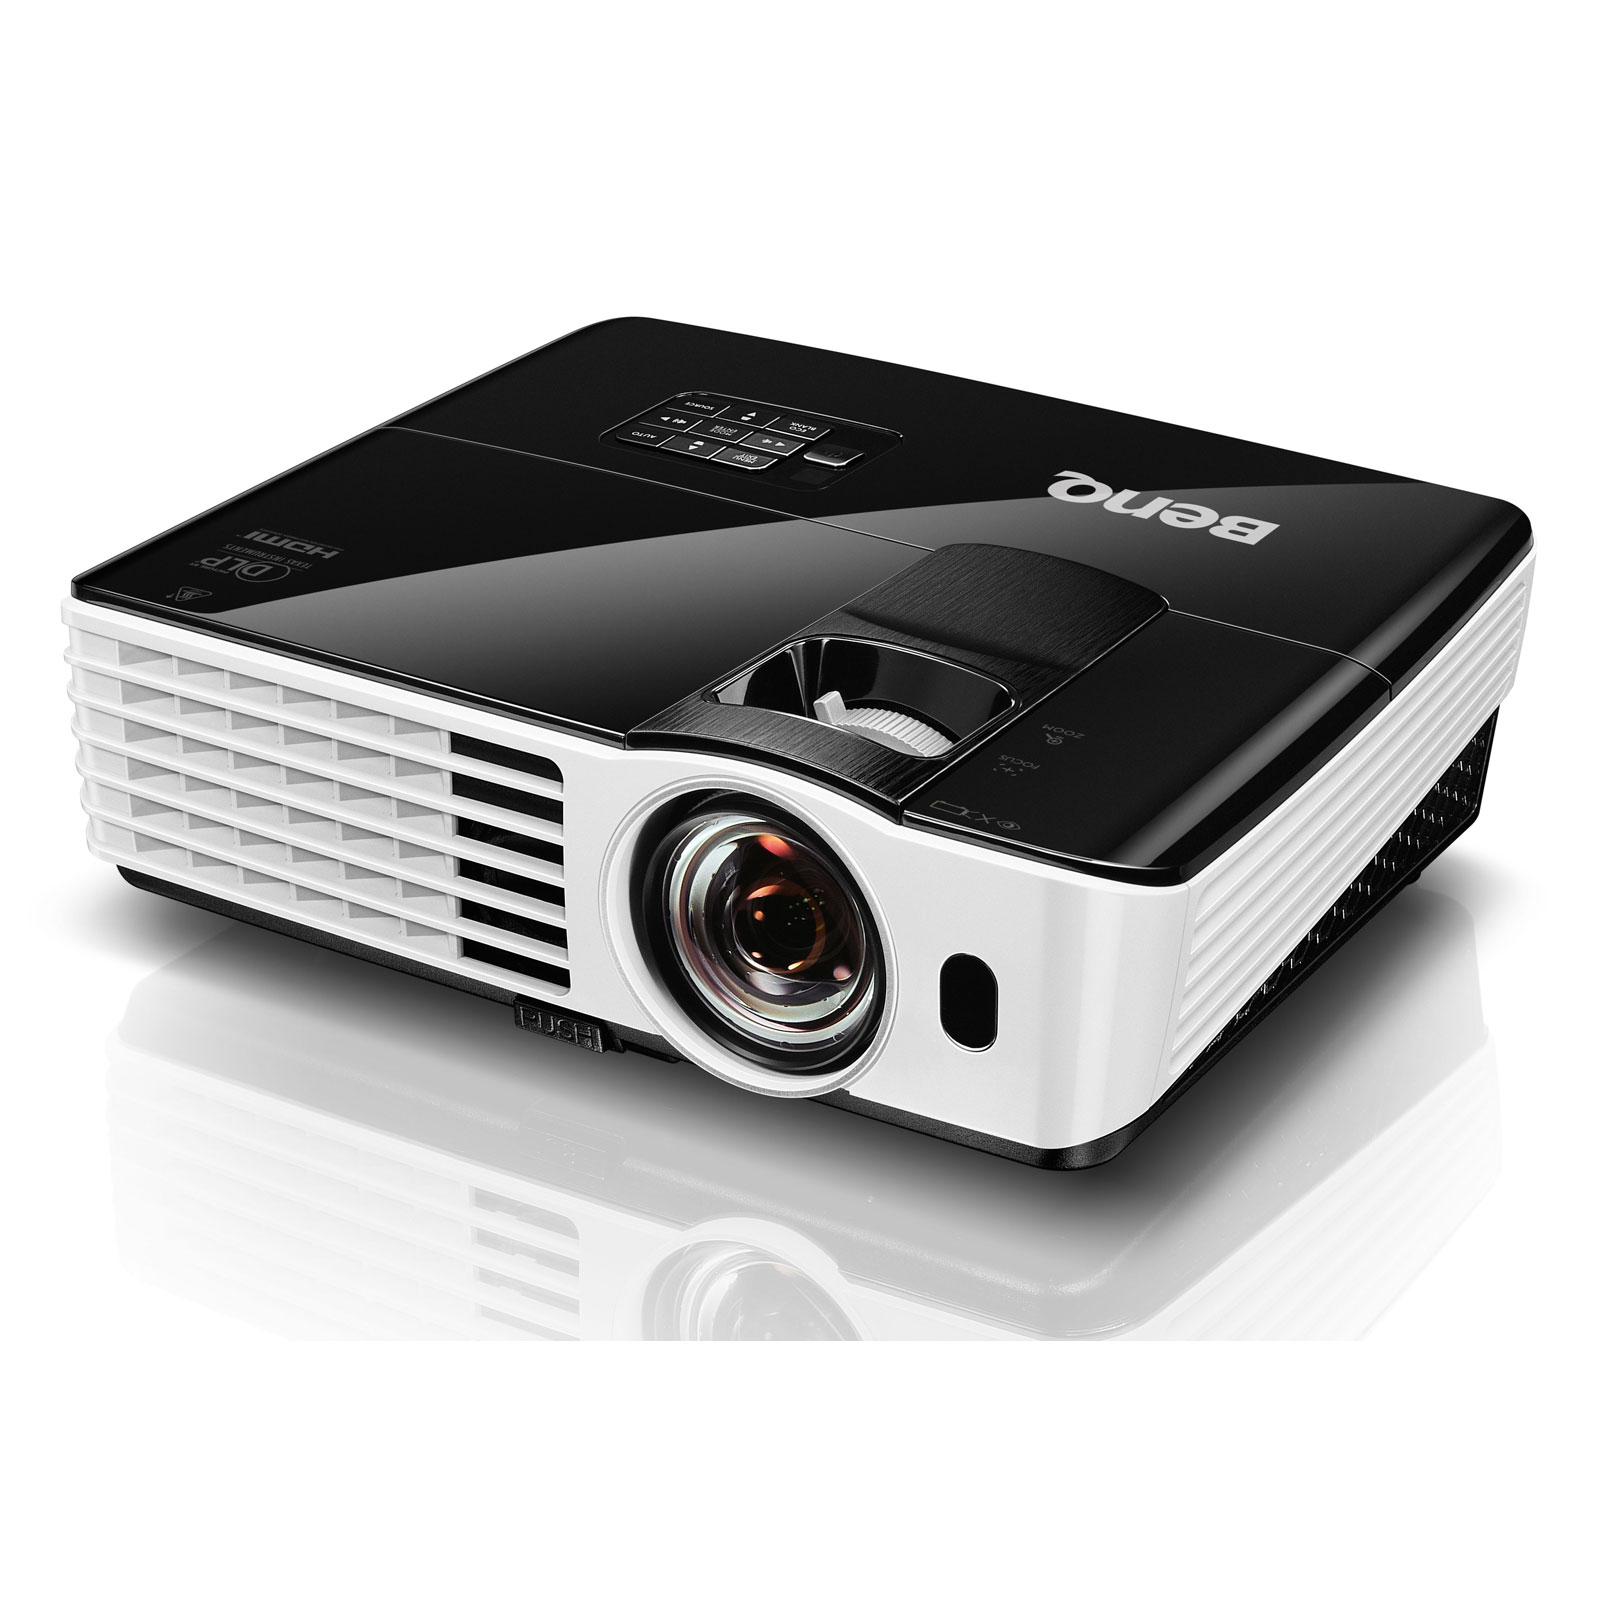 Benq th682st vid oprojecteur benq sur ldlc for Meuble videoprojecteur